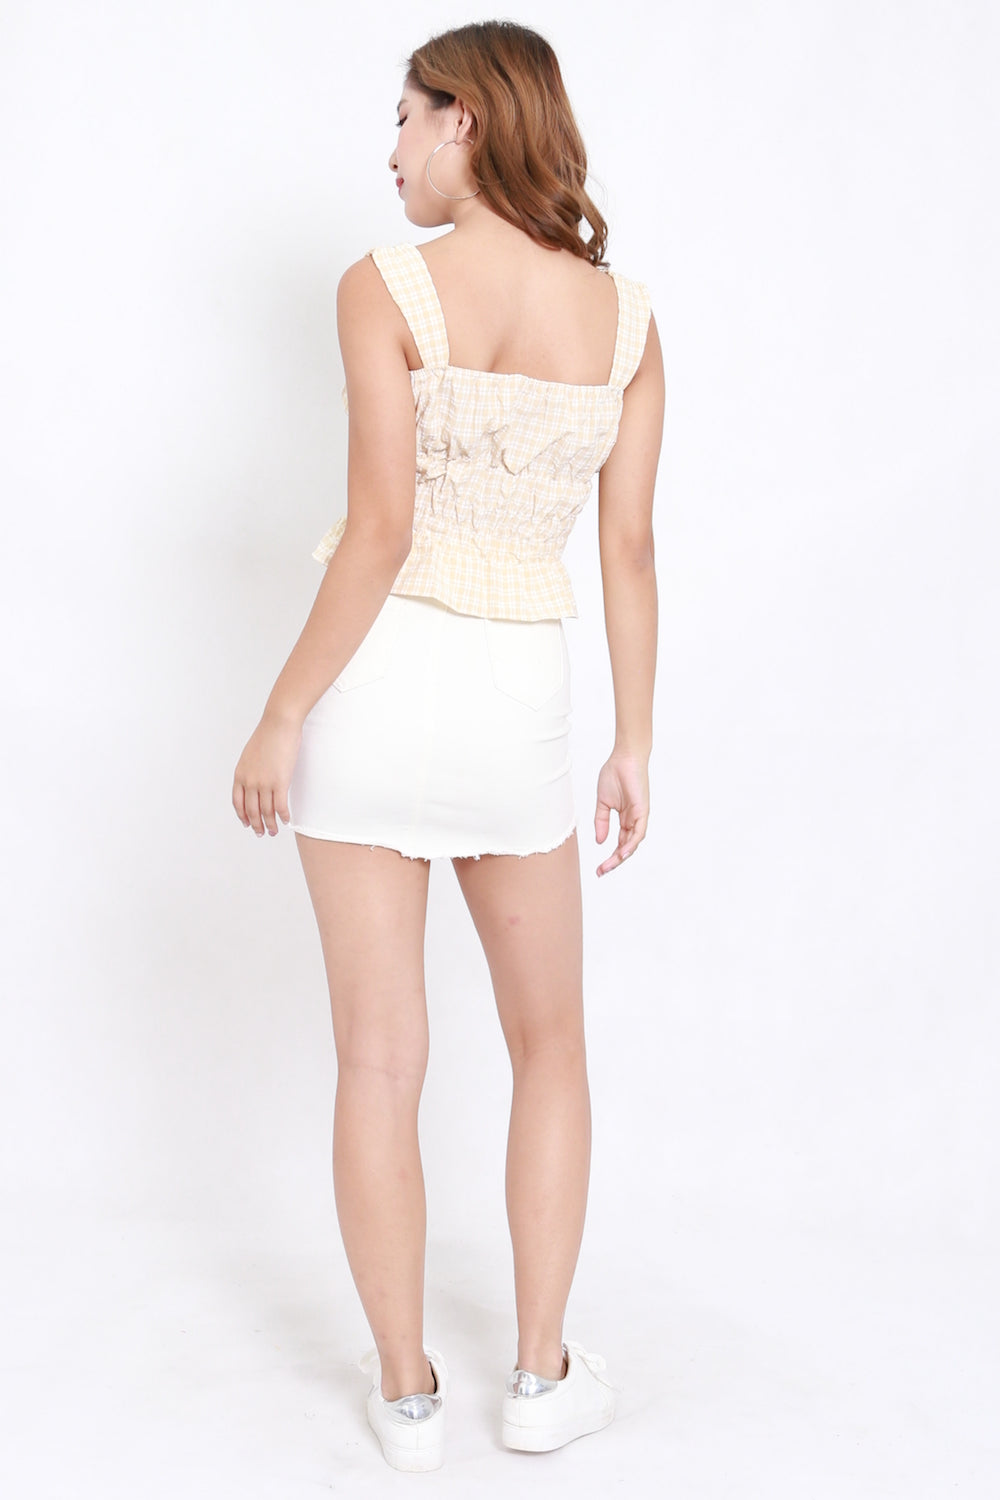 Gingham Puffed Crop Top (Cream)